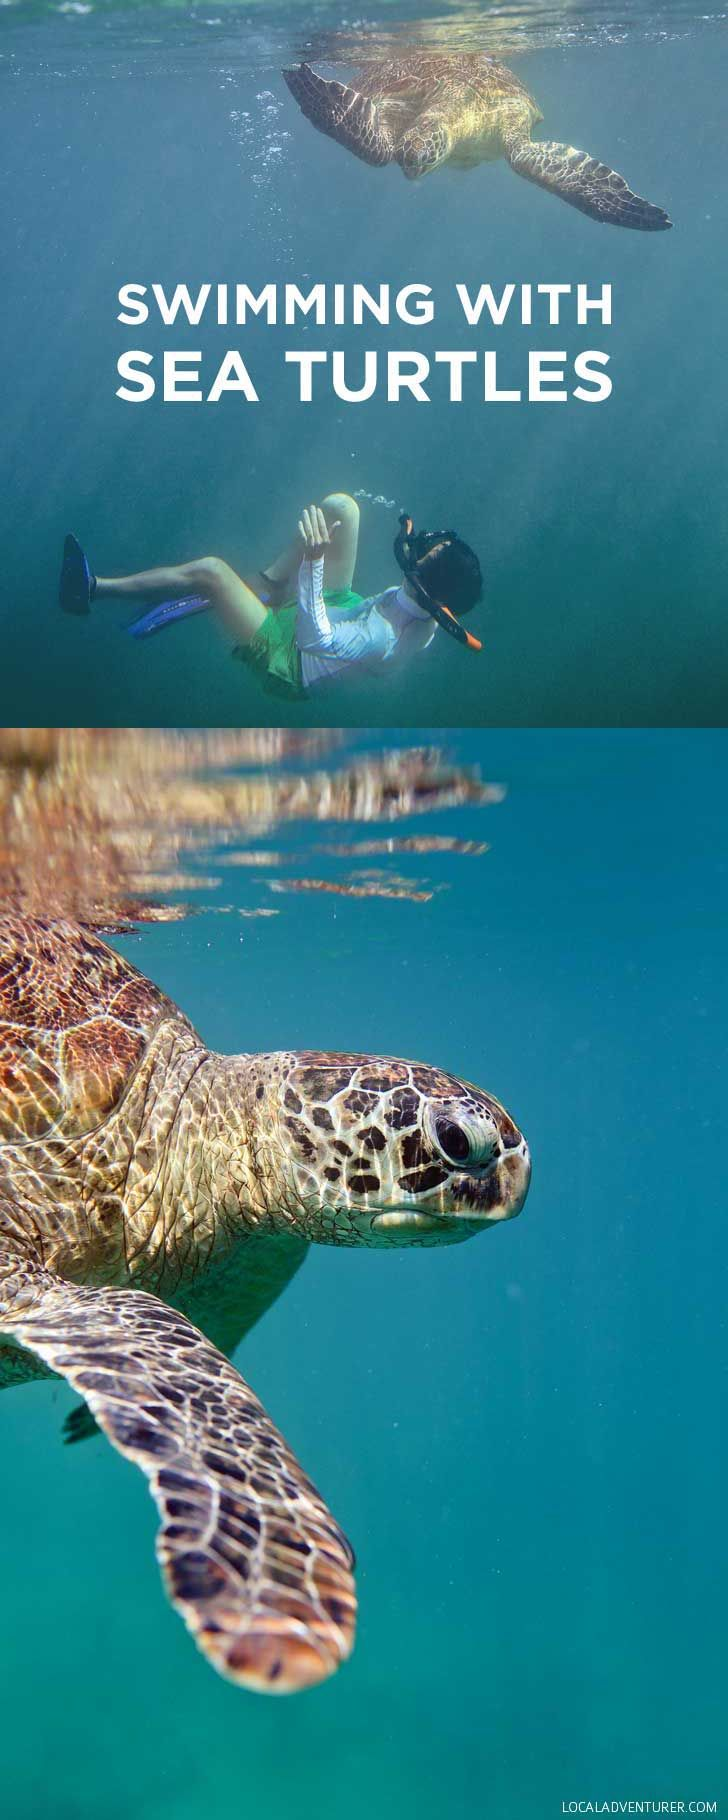 Swimming with Dozens of Endangered Sea Turtles in